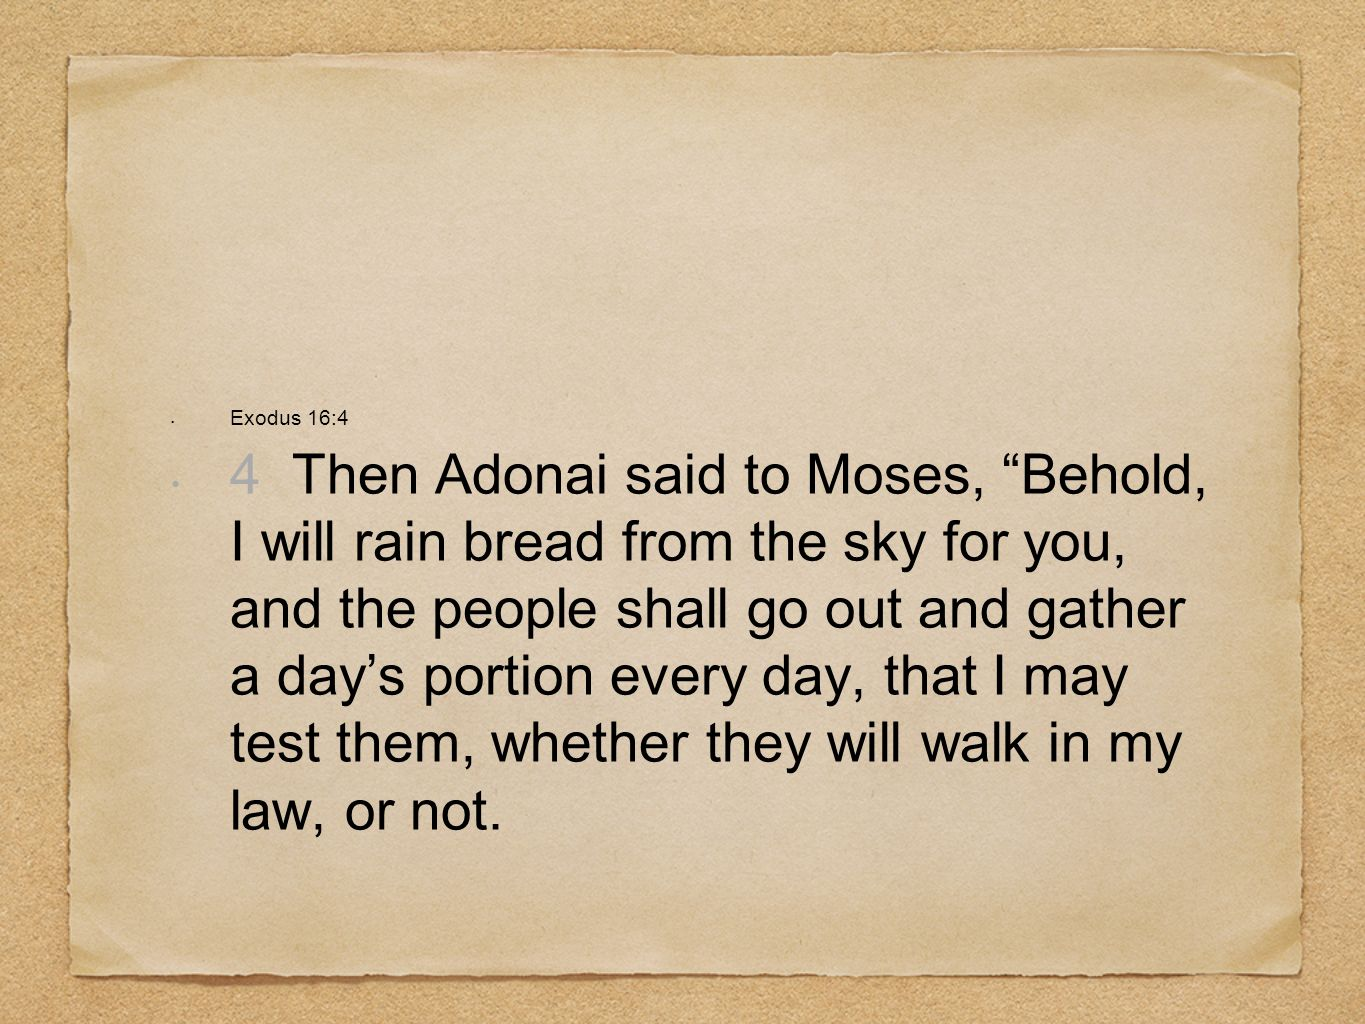 Exodus 16:4 4 Then Adonai said to Moses, Behold, I will rain bread from the sky for you, and the people shall go out and gather a days portion every day, that I may test them, whether they will walk in my law, or not.